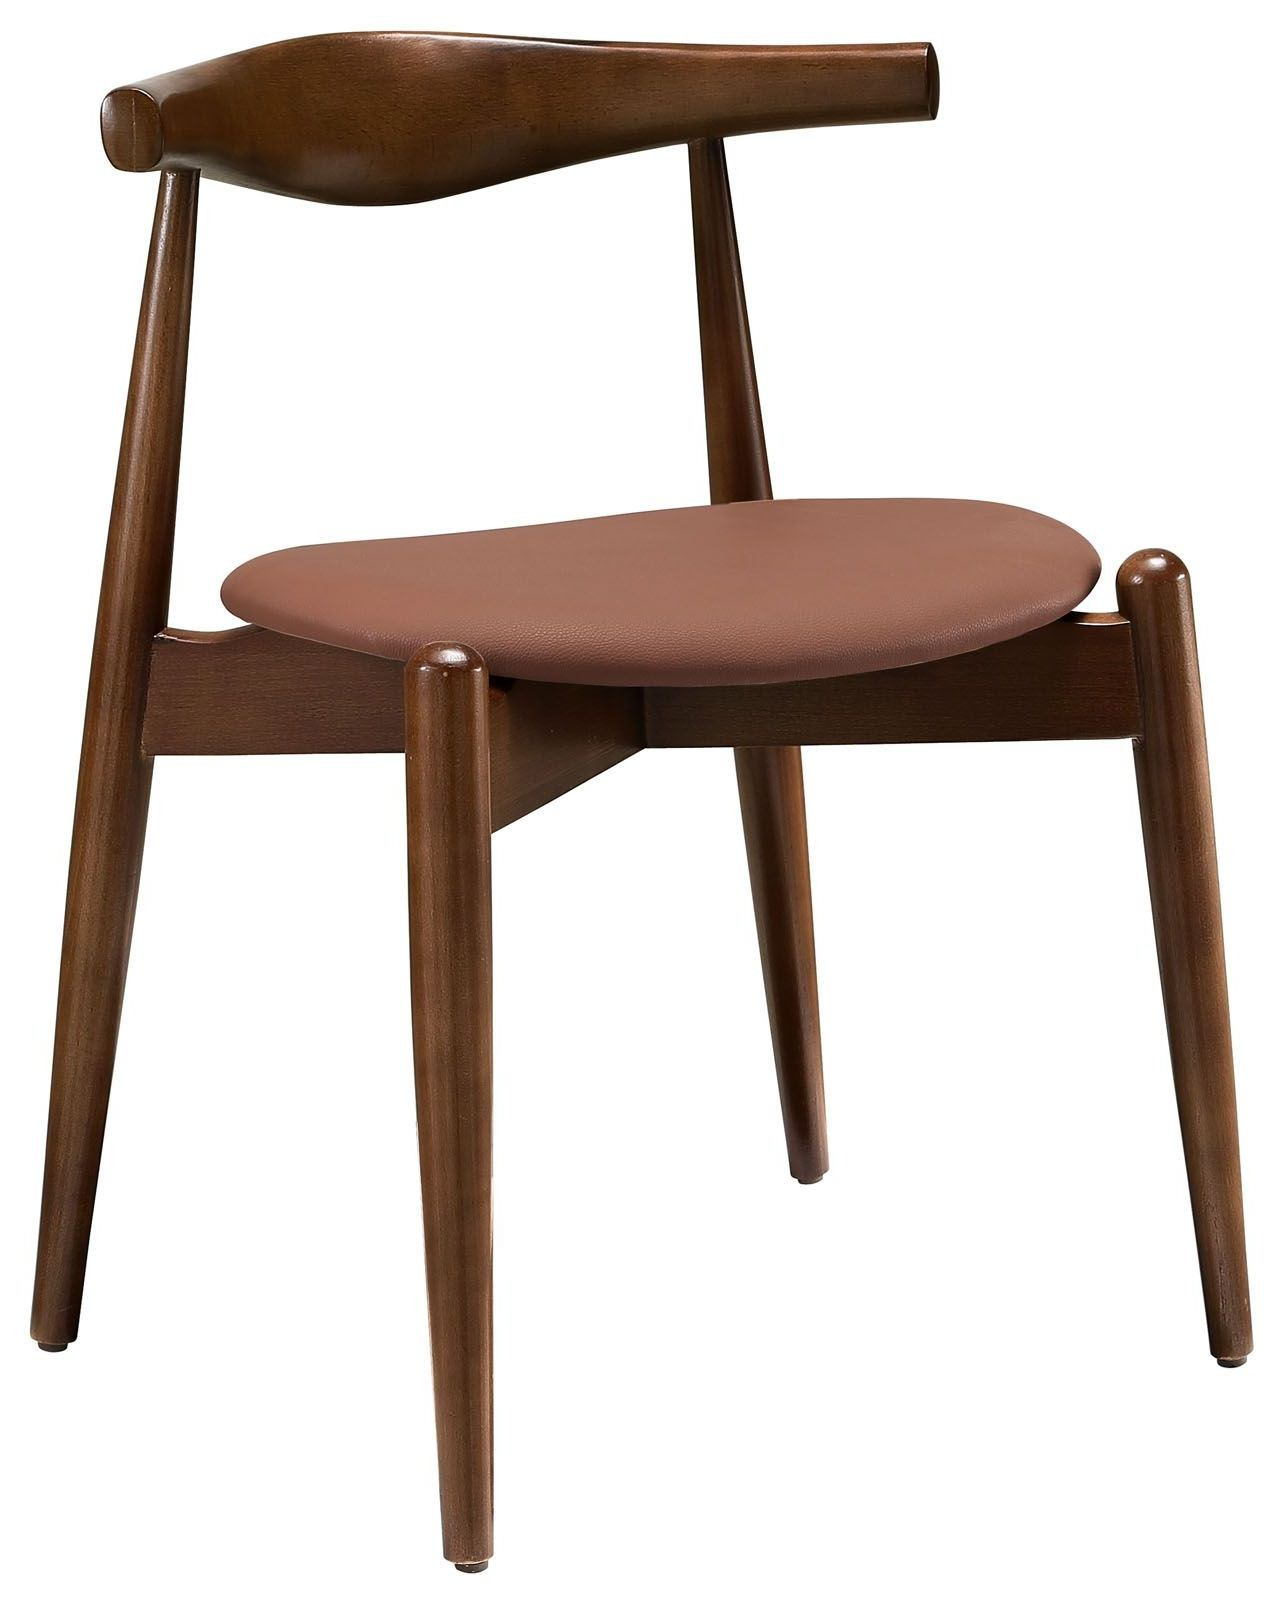 dark walnut dining chairs pottery barn charleston chair 1 2 slipcover stalwart tan and table set of 5